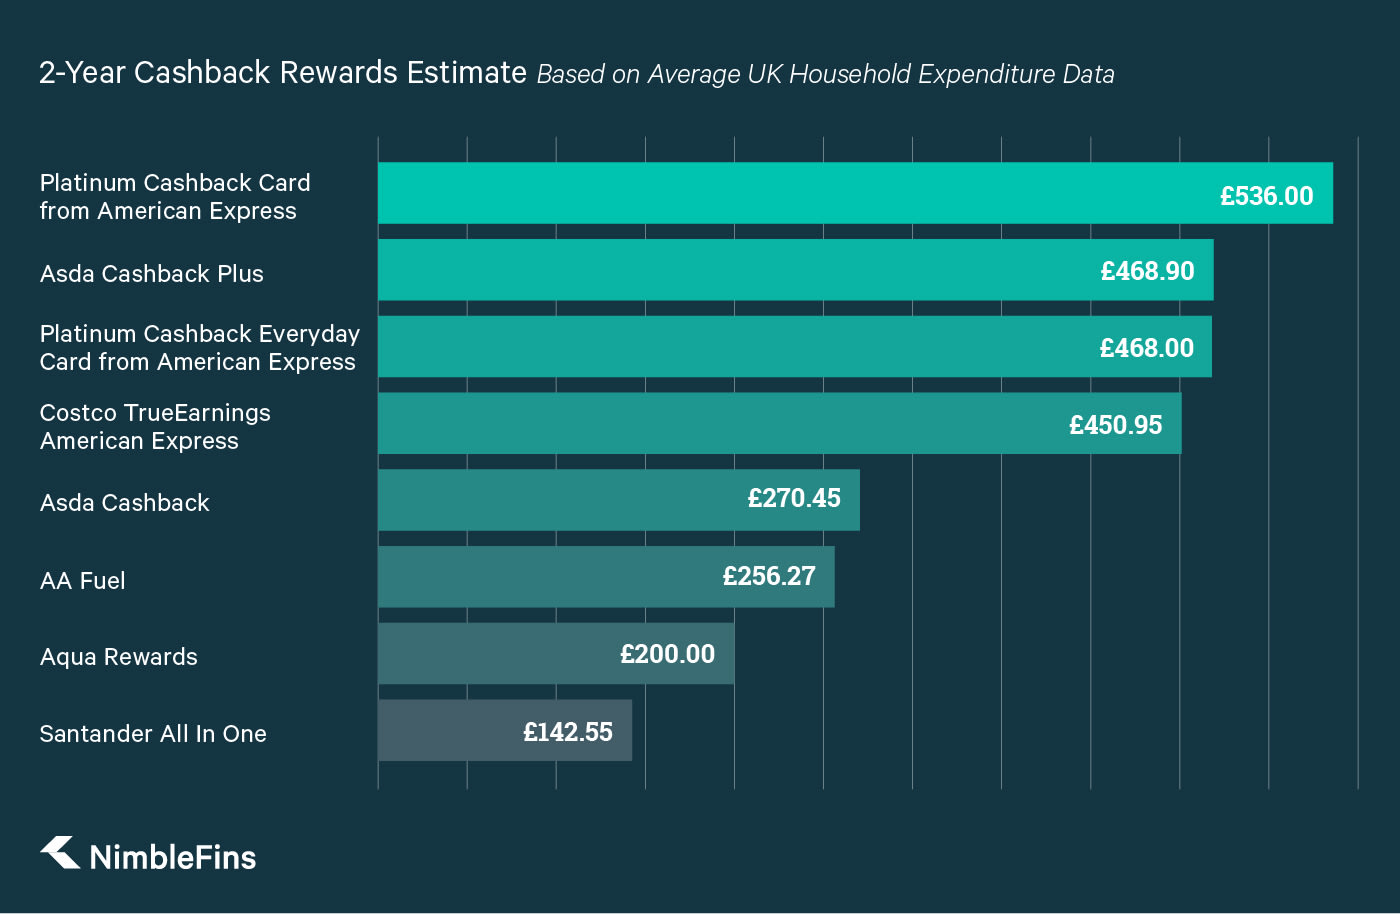 A chart comparing the estimated cashback rewards over 2 years for the best UK cashback credit cards, based on average UK household spending